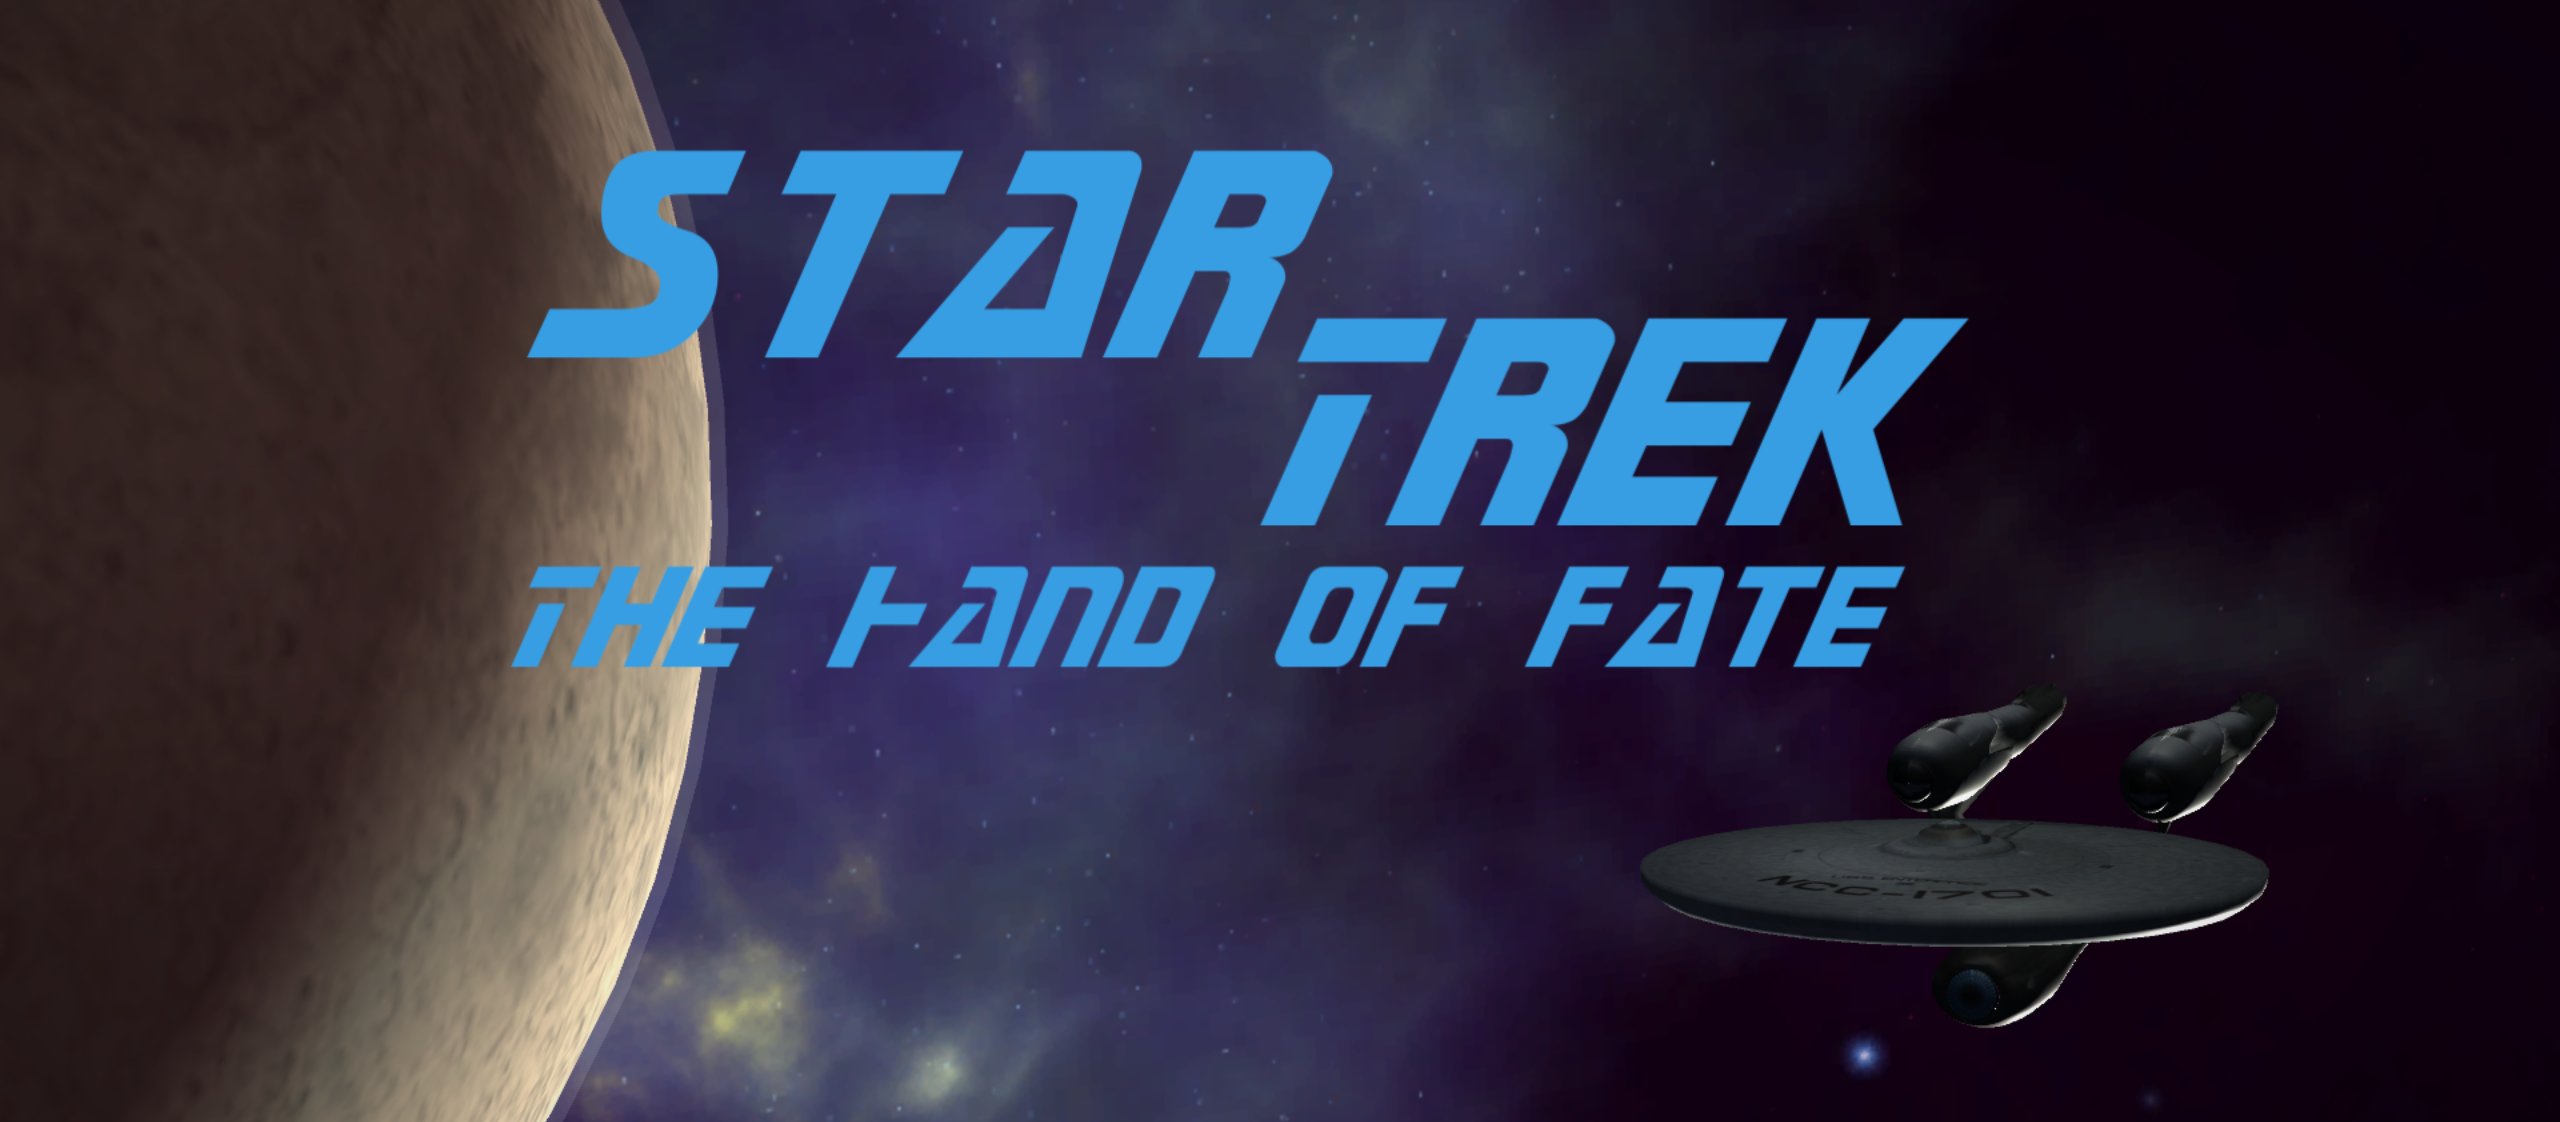 Star Trek: The Hand of Fate